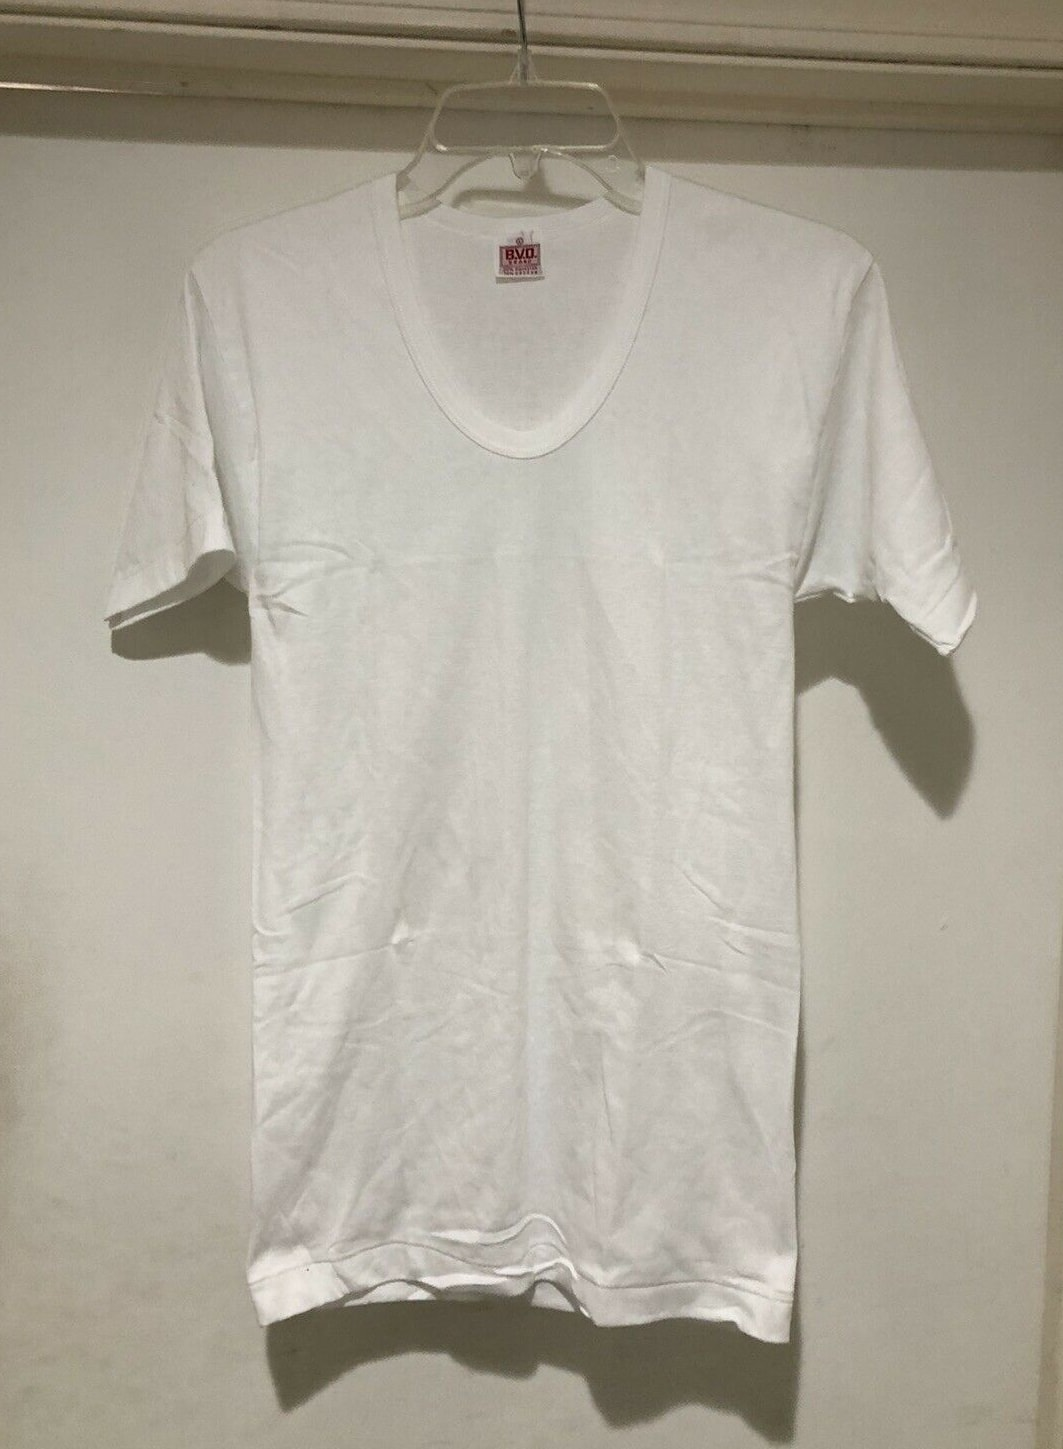 Vintage 50s BVD Blank White V Neck T Shirt Size XS Made In USA DEADSTOCK NOS